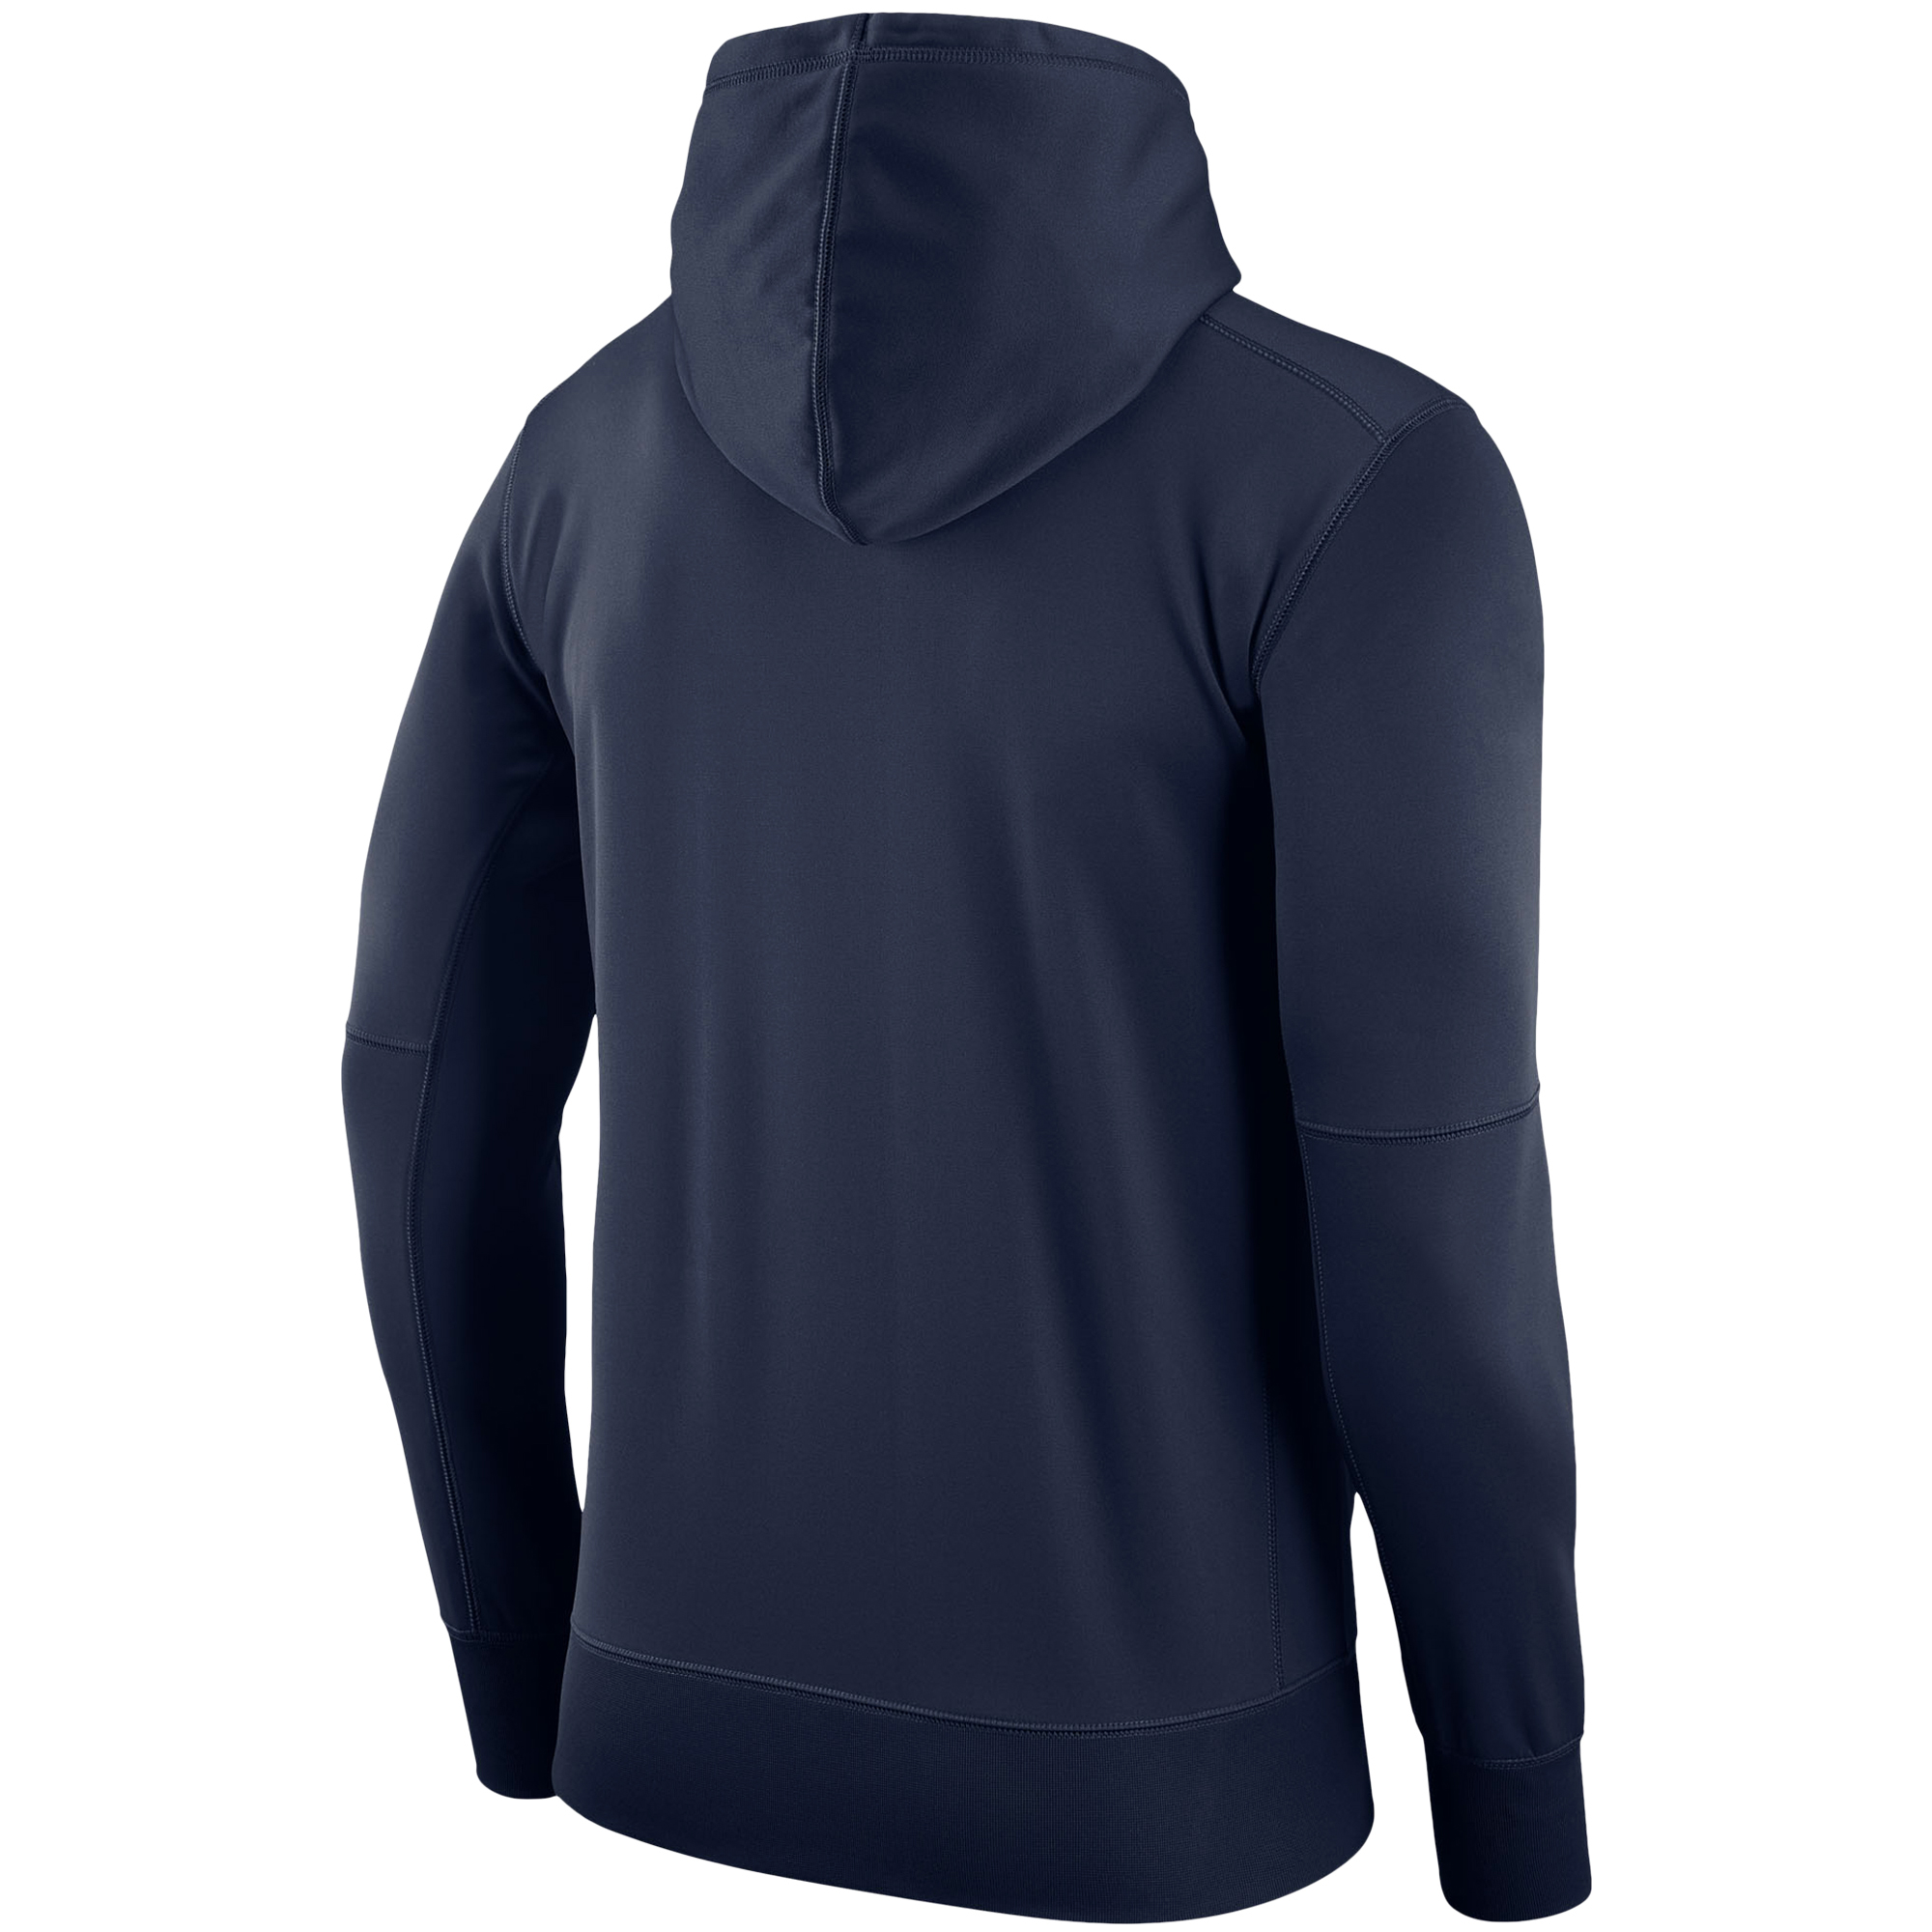 7e59ff80 Penn State Nittany Lions Nike Wrestling Drop Pullover Performance Hoodie -  Navy - Walmart.com